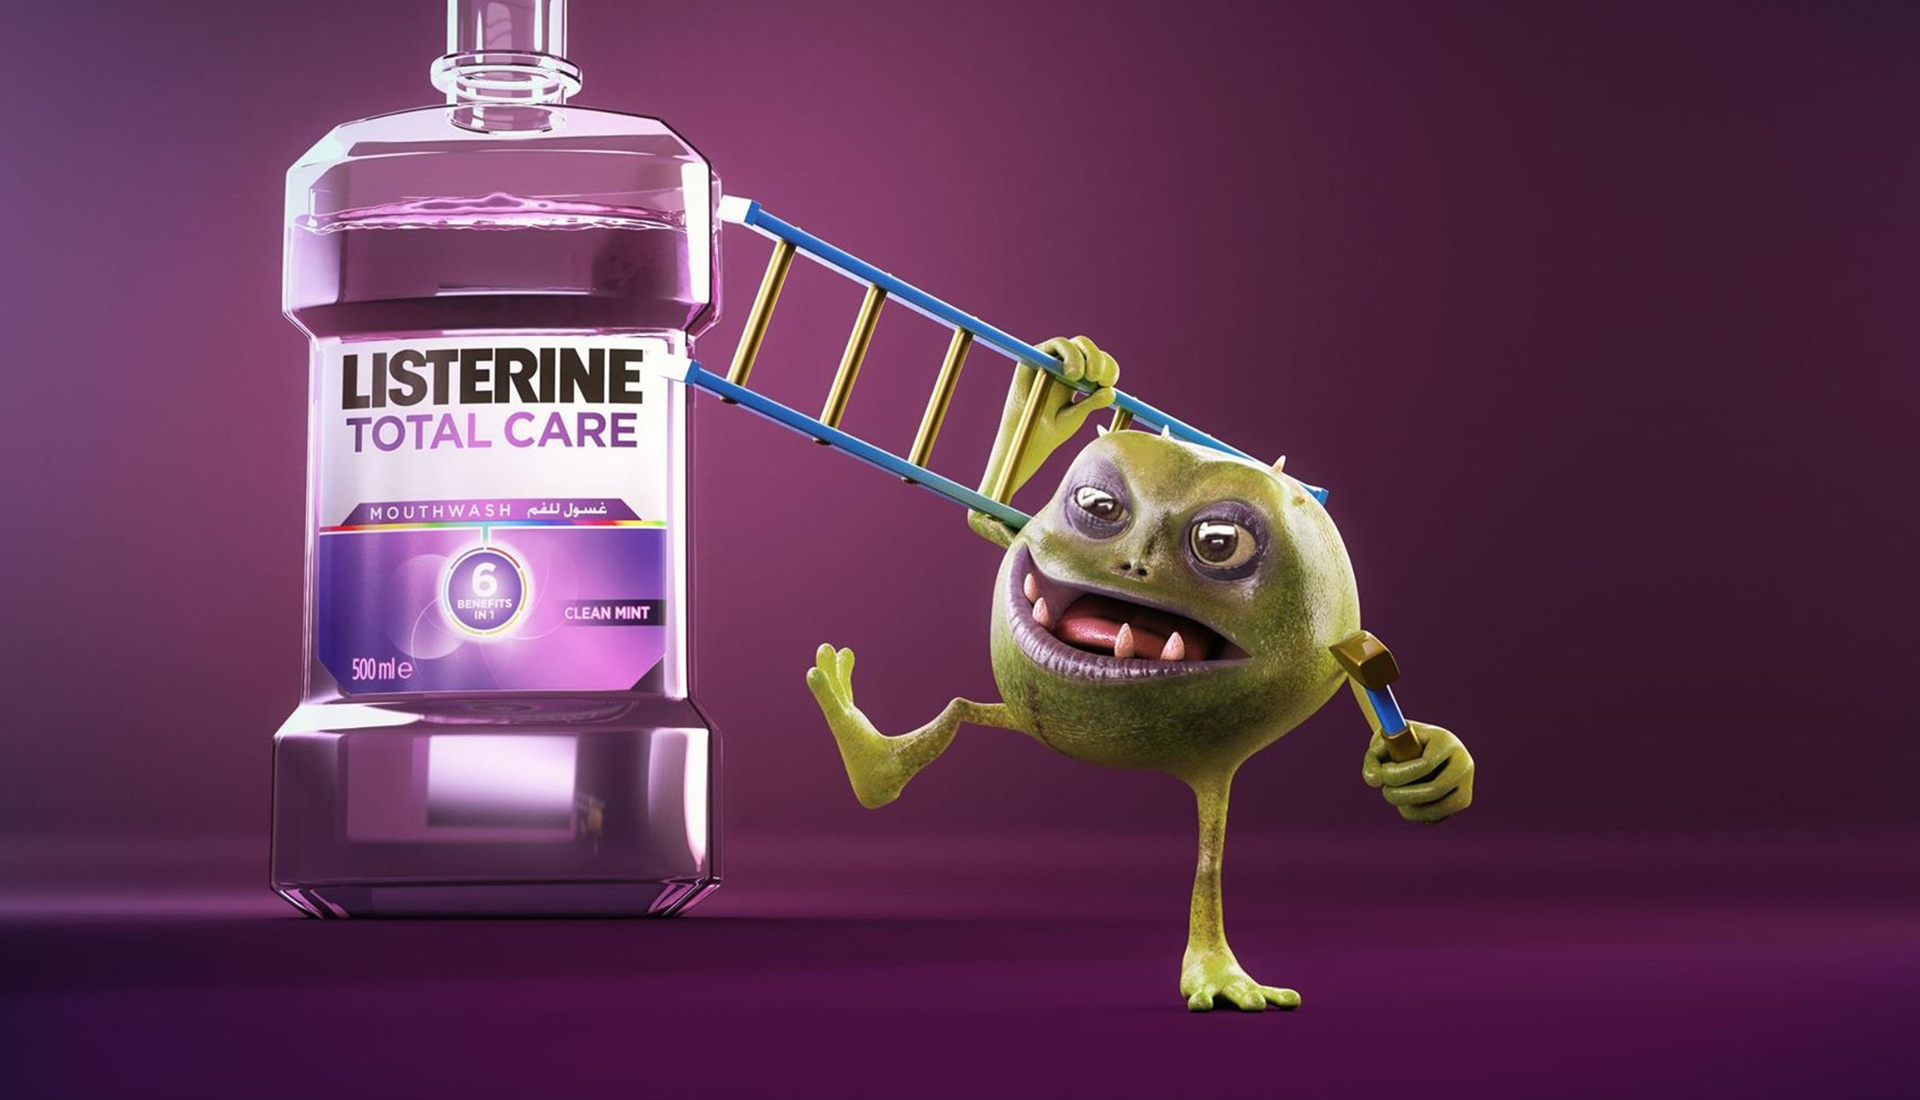 Listerine - Hive Innovative Group - Digital Marketing and Advertising Agency